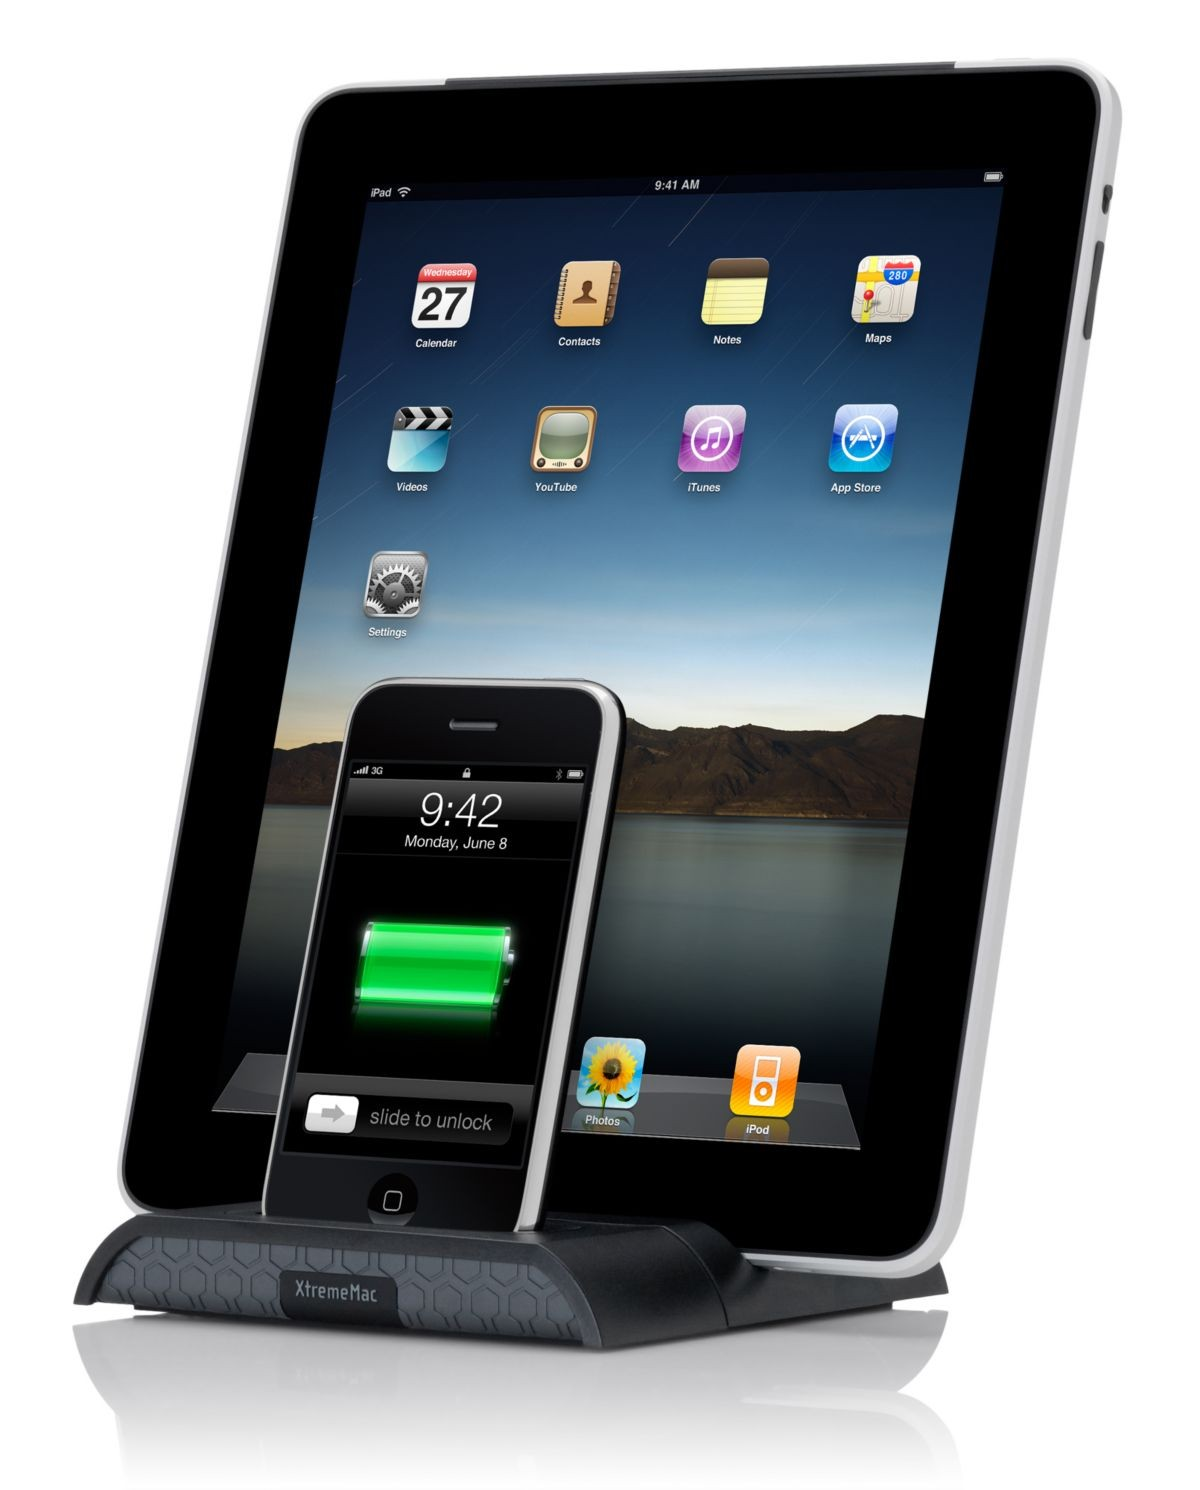 XtremeMac 2.1 Amp Dobbelt Docking Station til iPhone, iPod & iPad - Sort